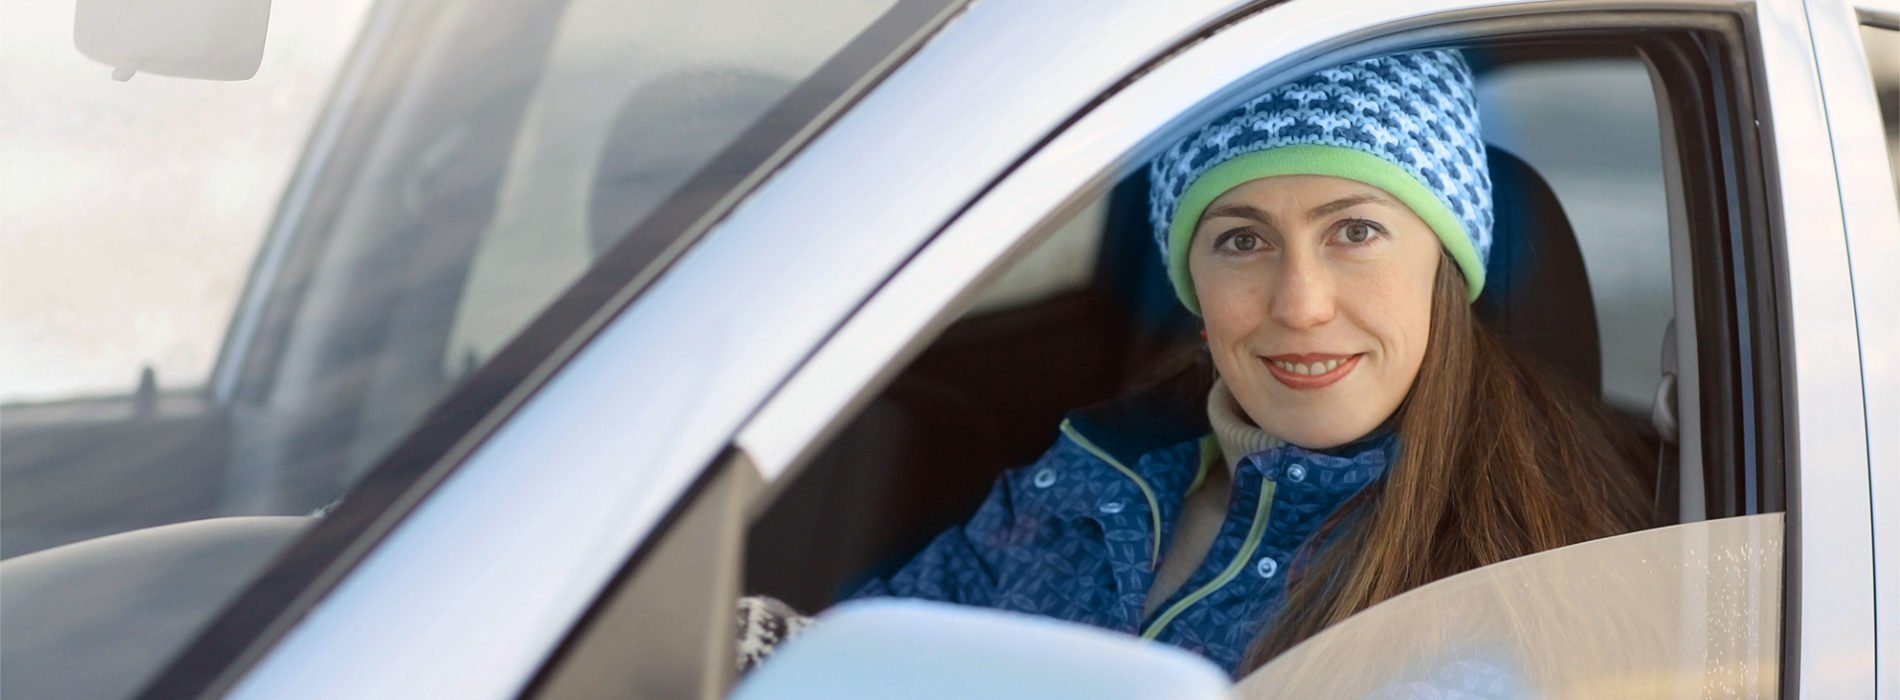 Mom window of car CAA Members can SAVE up to 20% on Auto and Home Insurance